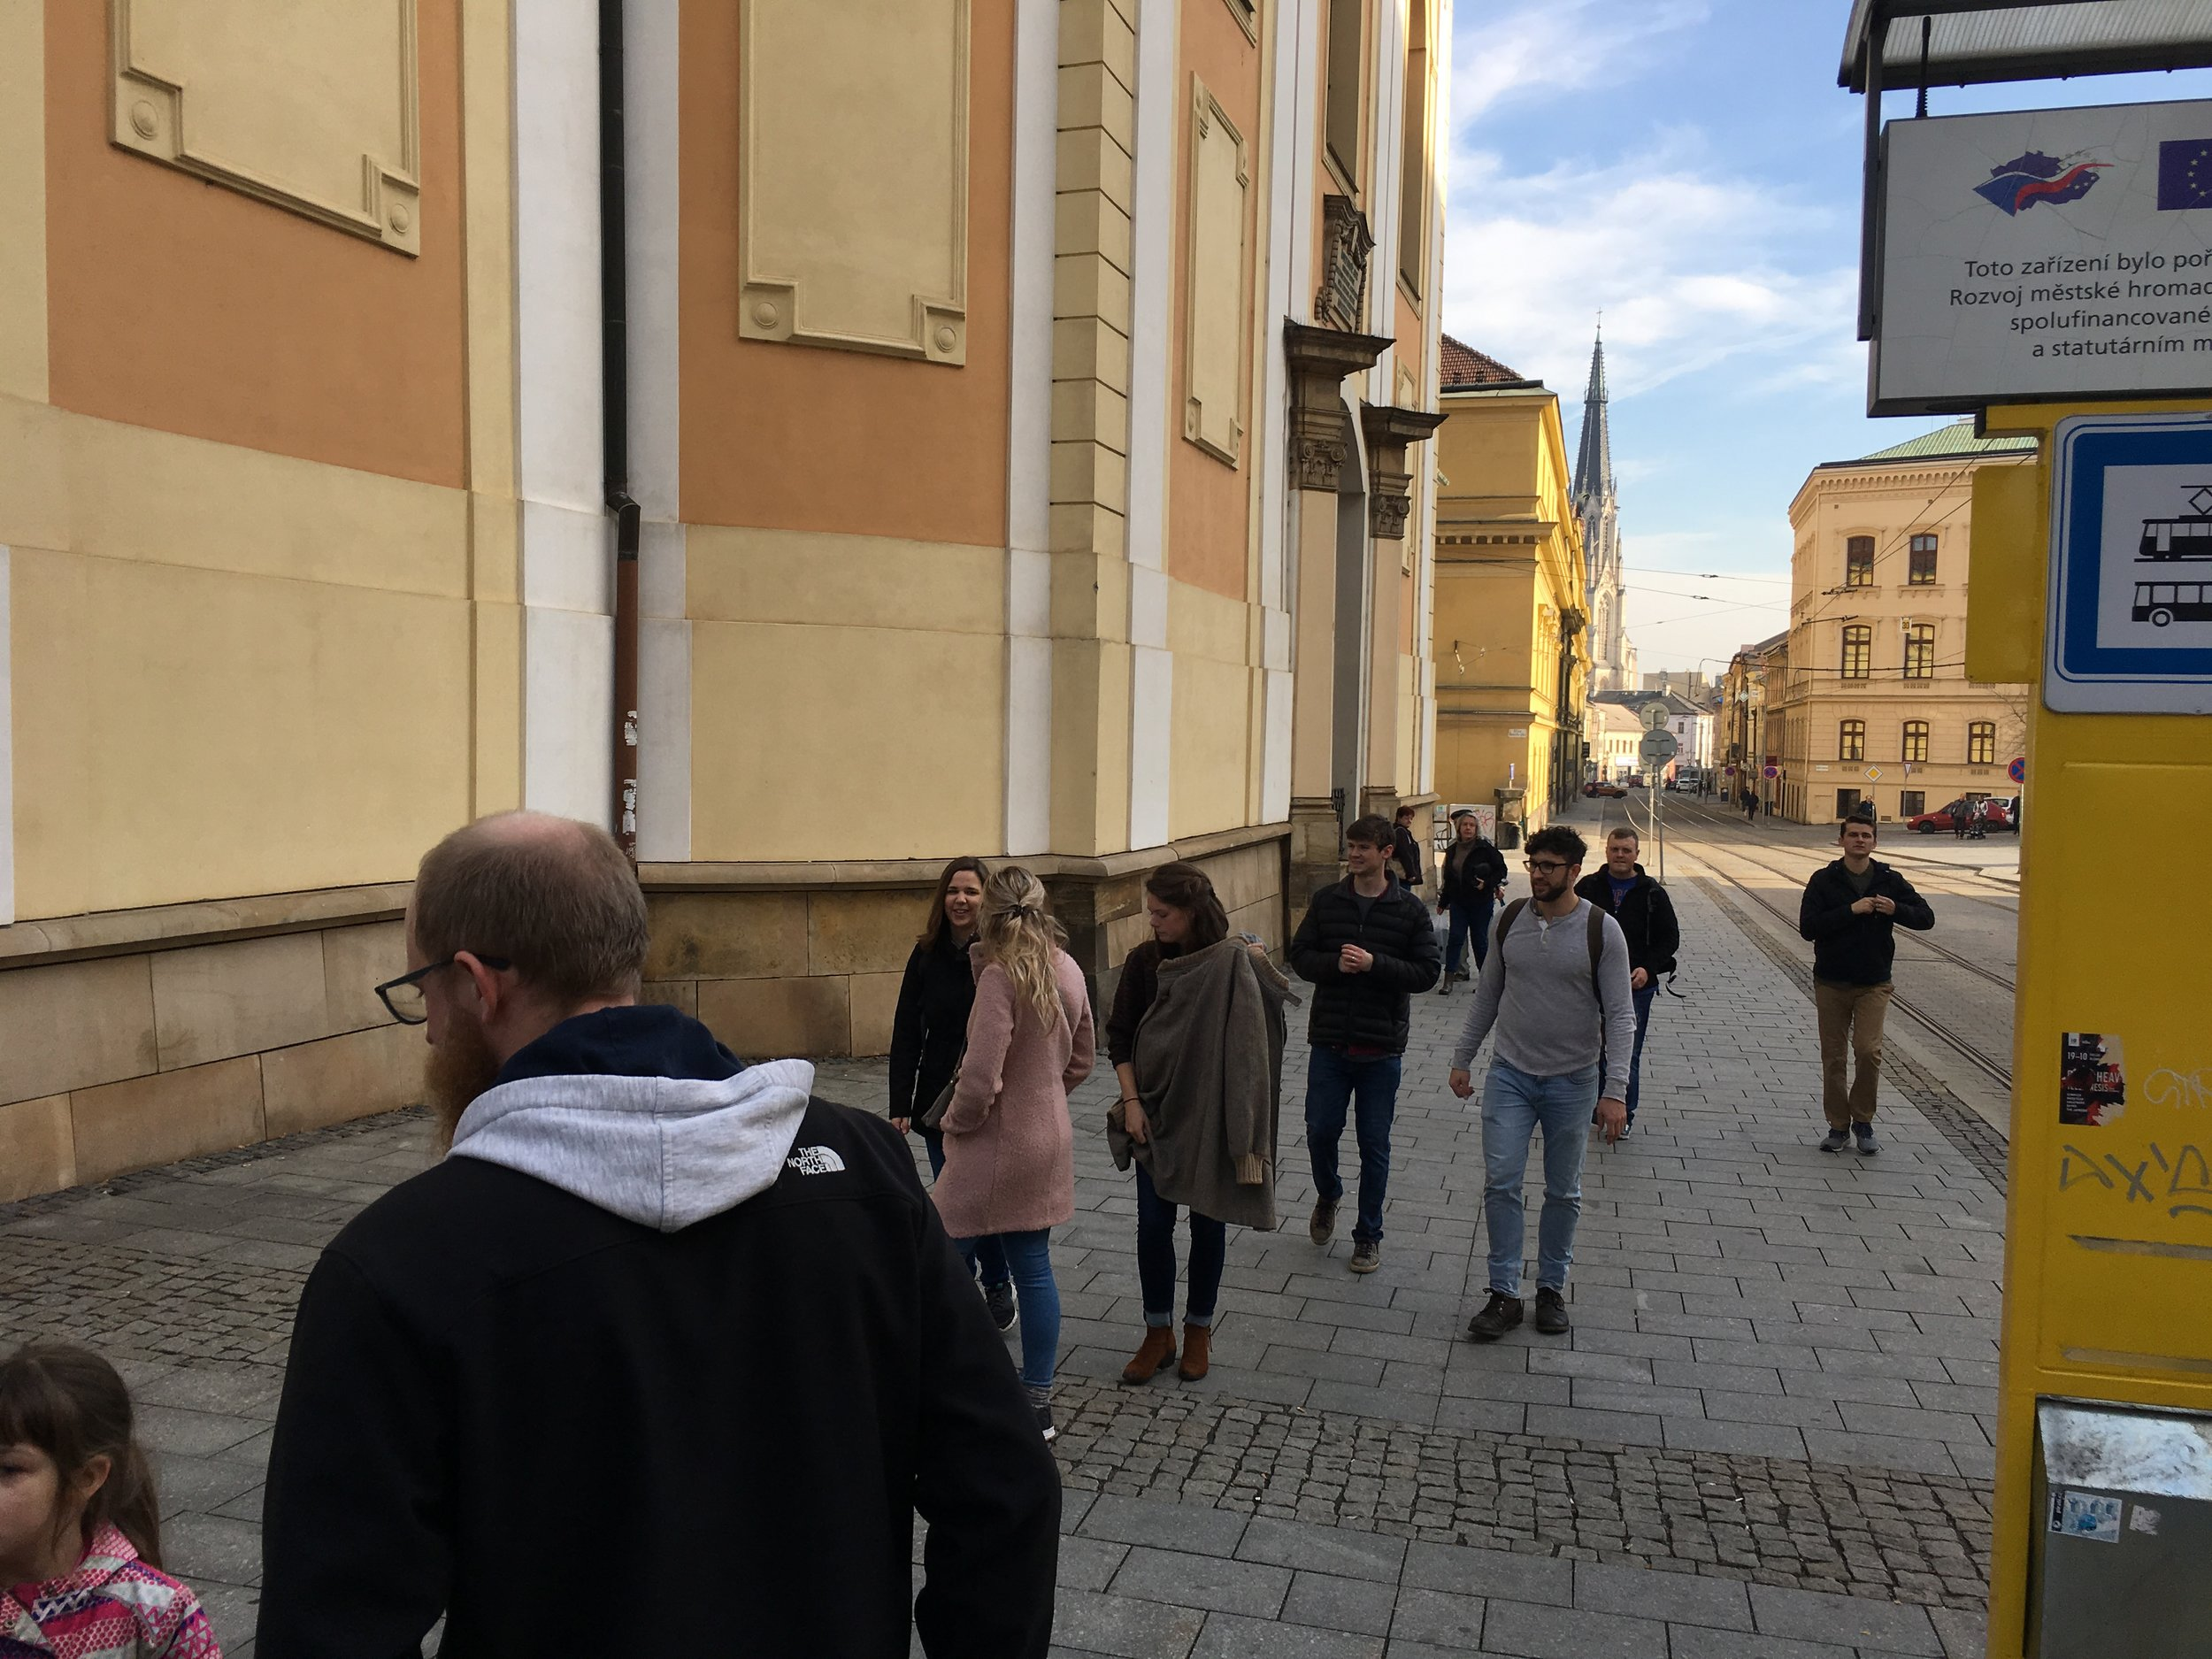 Walking through Olomouc